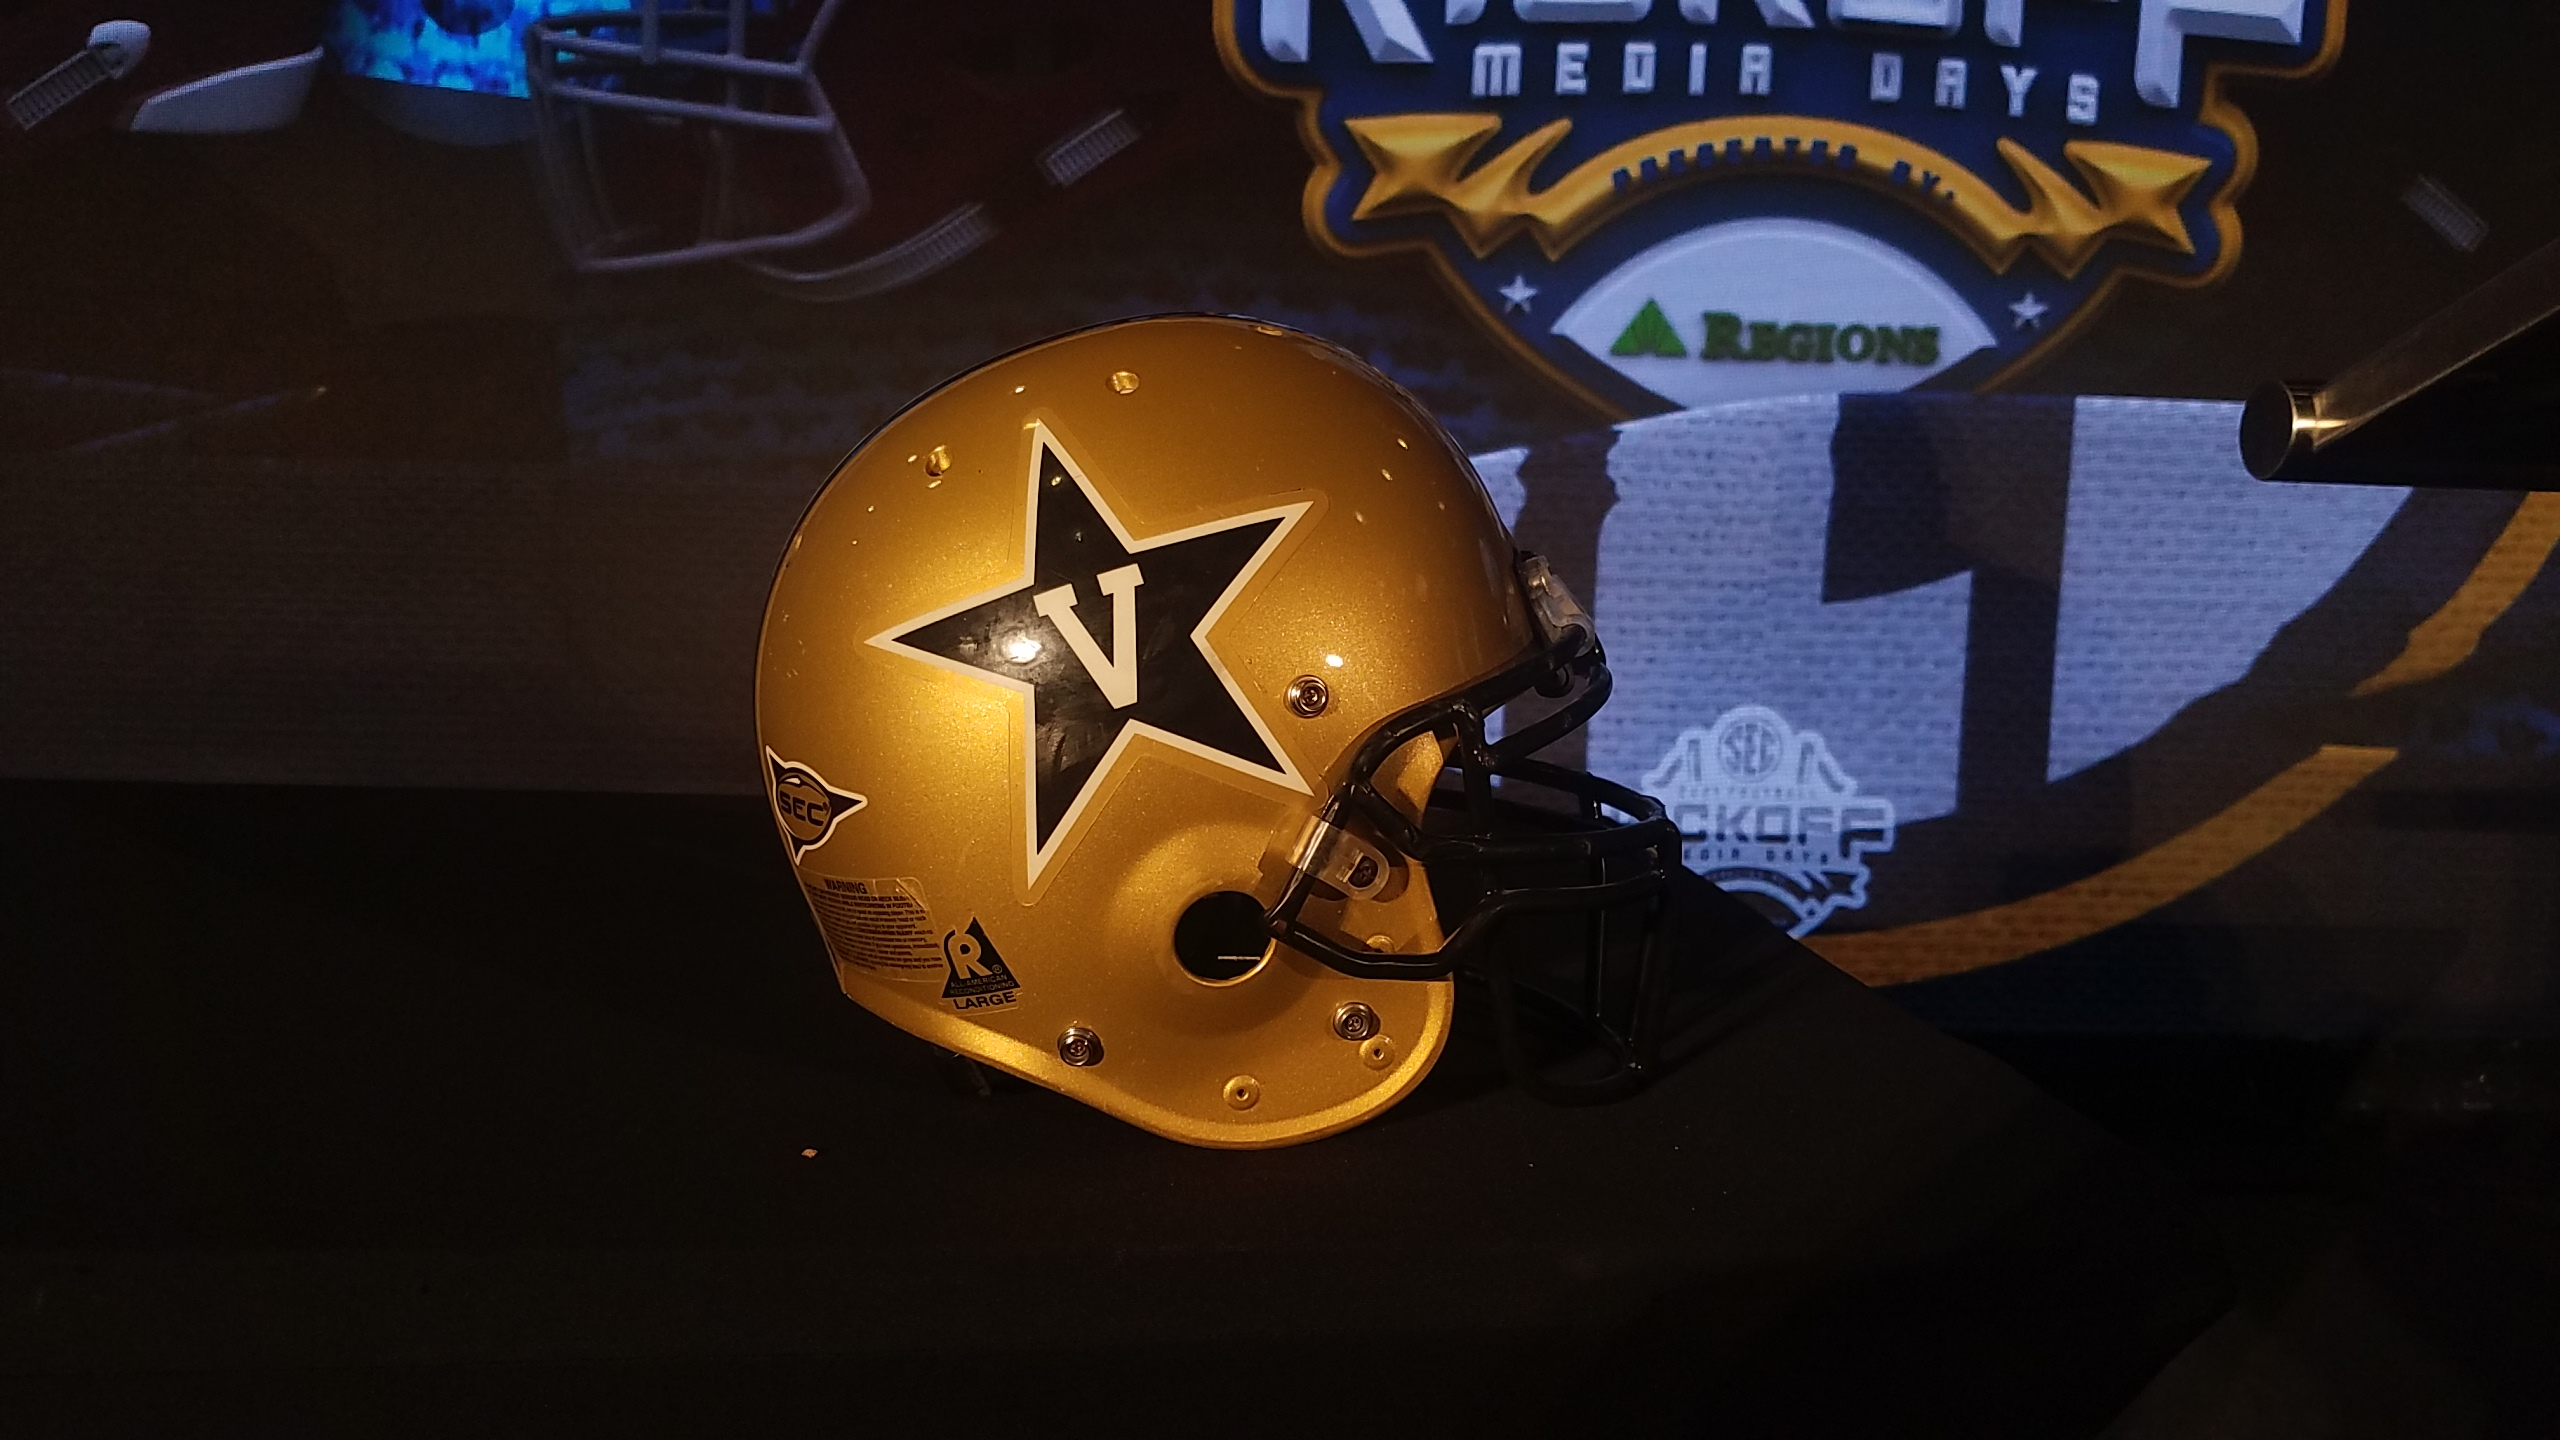 VIDEOS/PODCASTS: Everything from Vanderbilt at #SECMD21